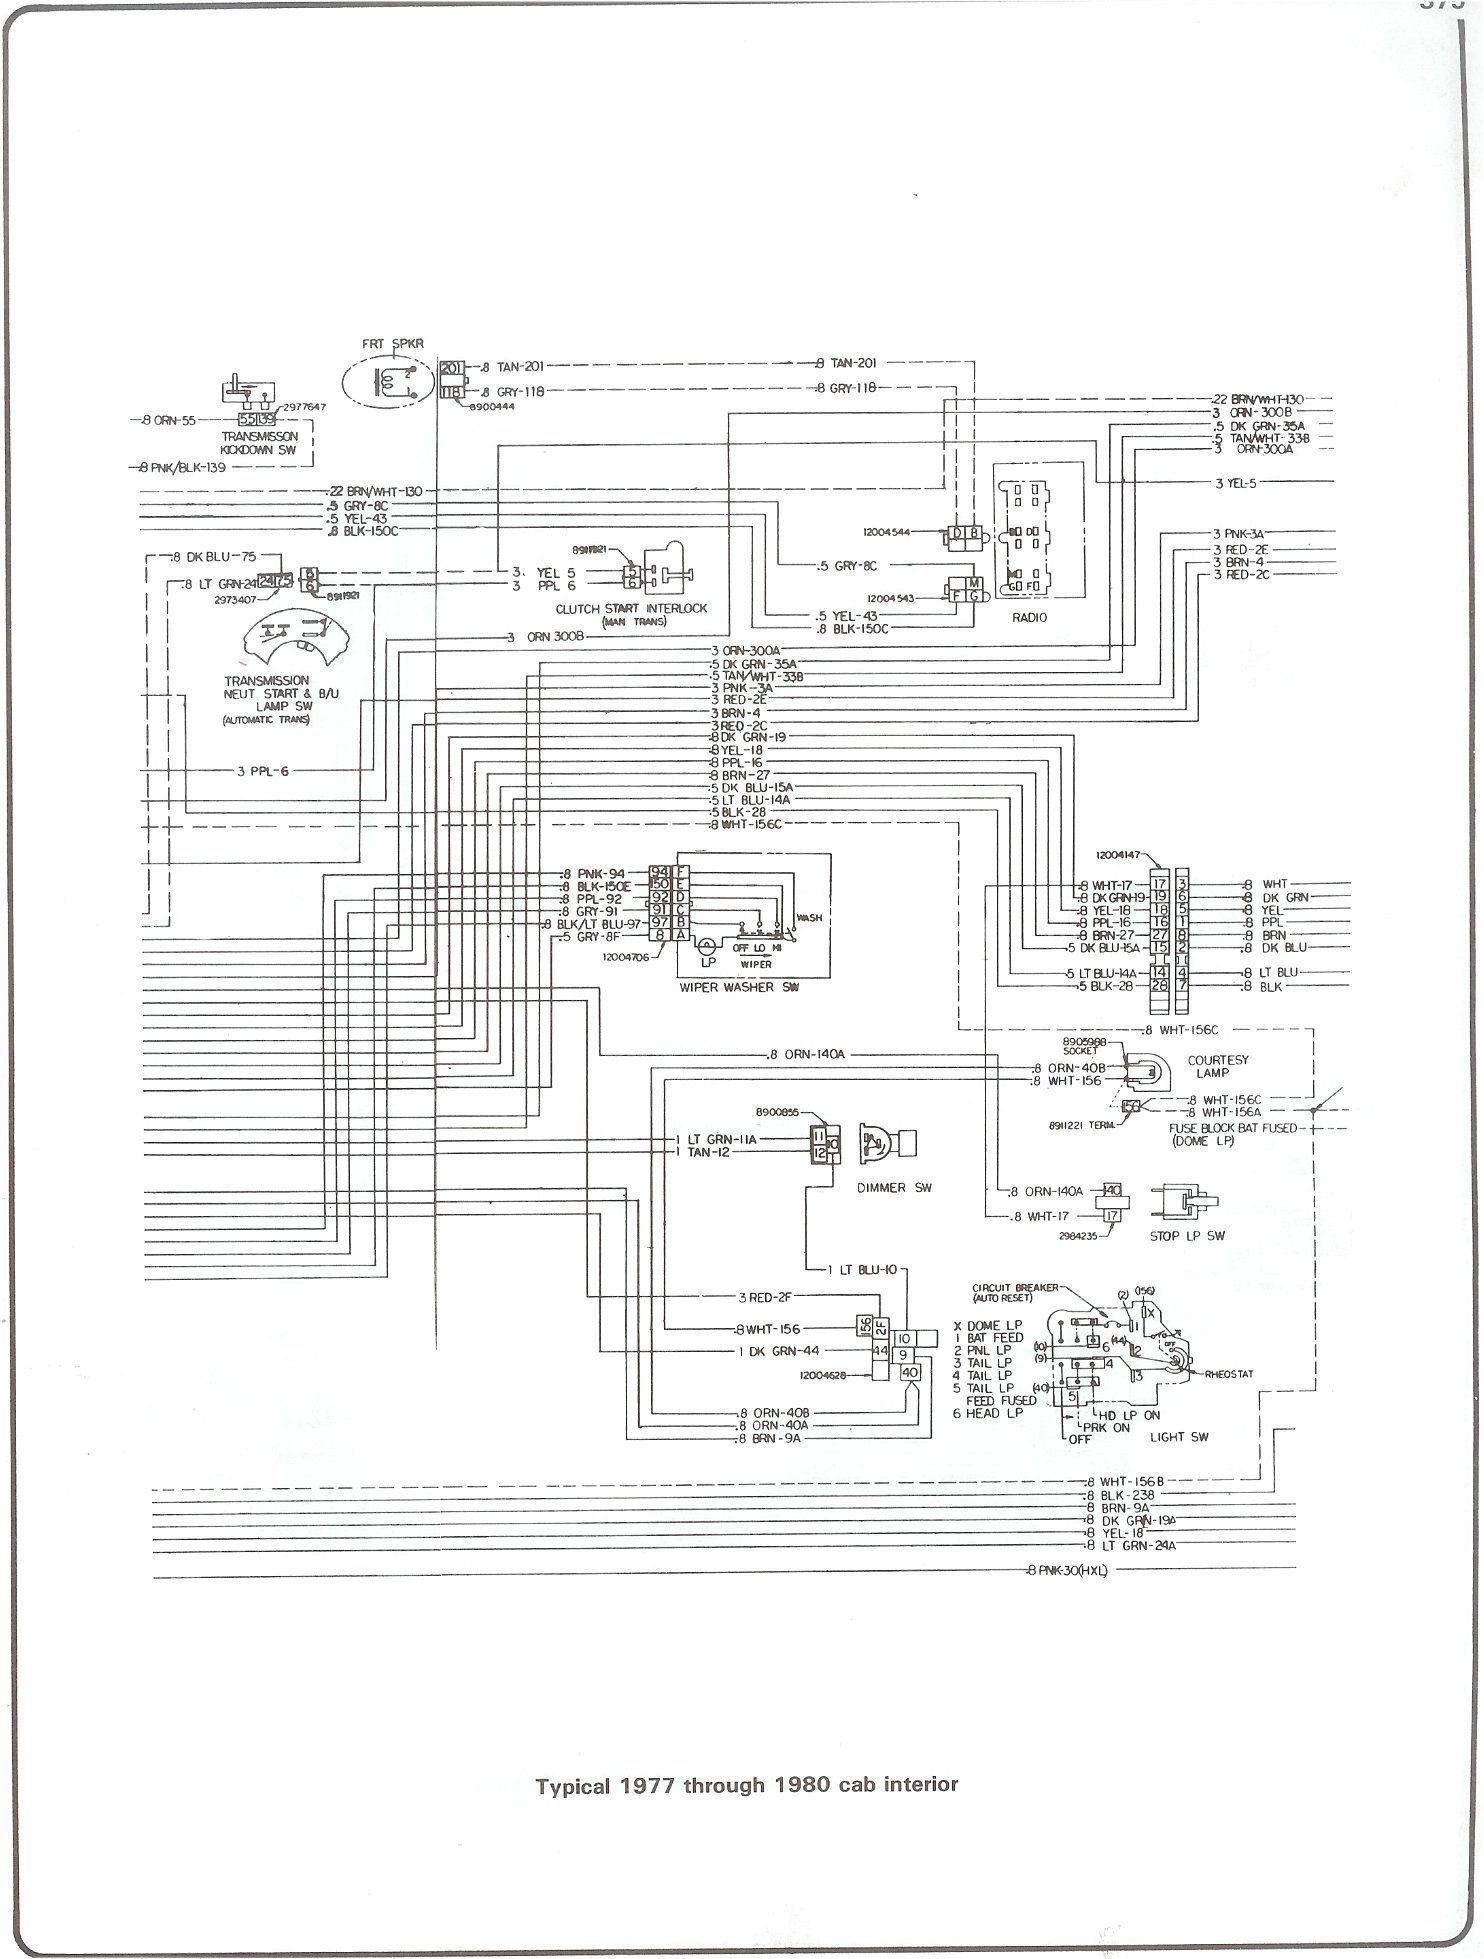 77 80_cab_inter complete 73 87 wiring diagrams 2008 Chevy Silverado Wiring Diagram at bayanpartner.co